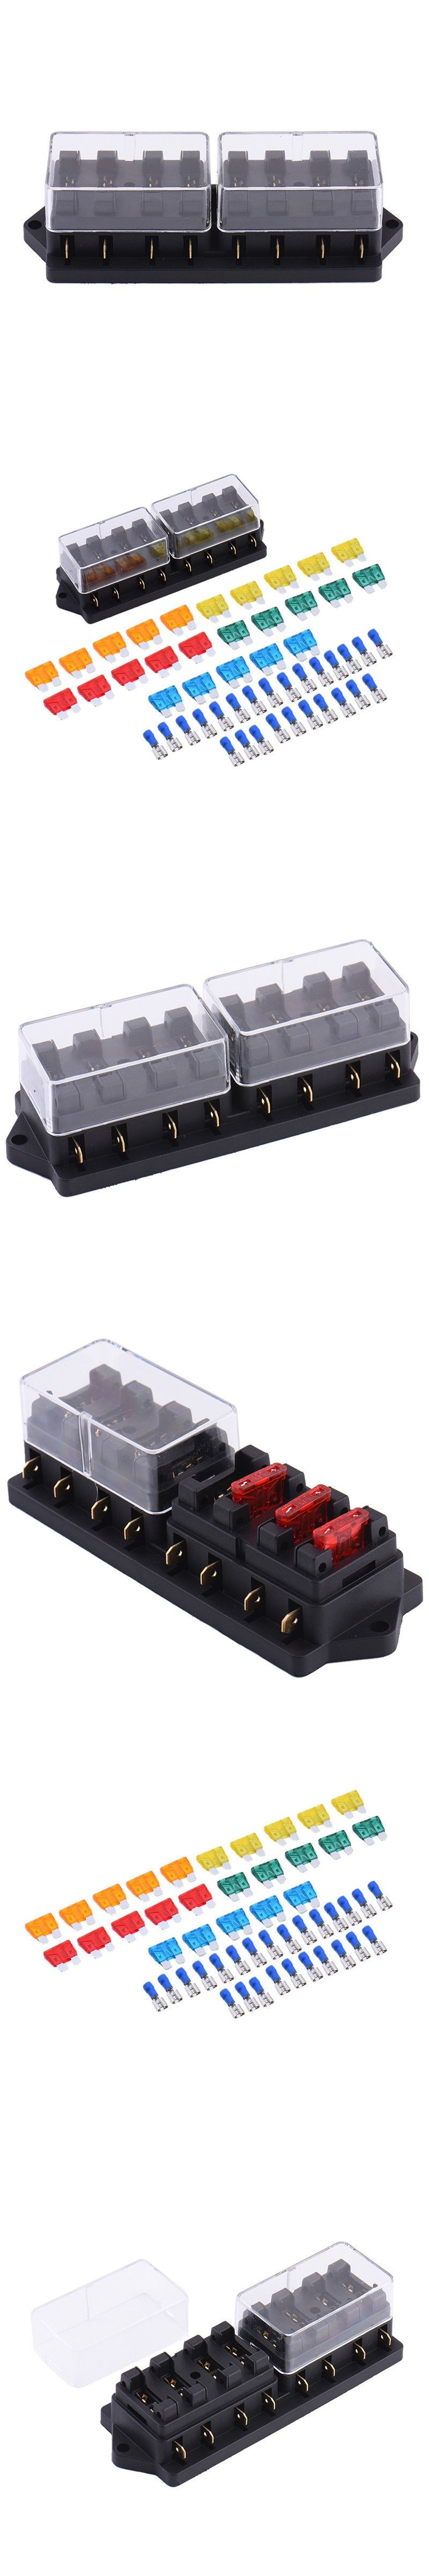 12v 8 way fuse block holder box car vehicle circuit automotive blade with 15pcs fuse accessory [ 800 x 4800 Pixel ]